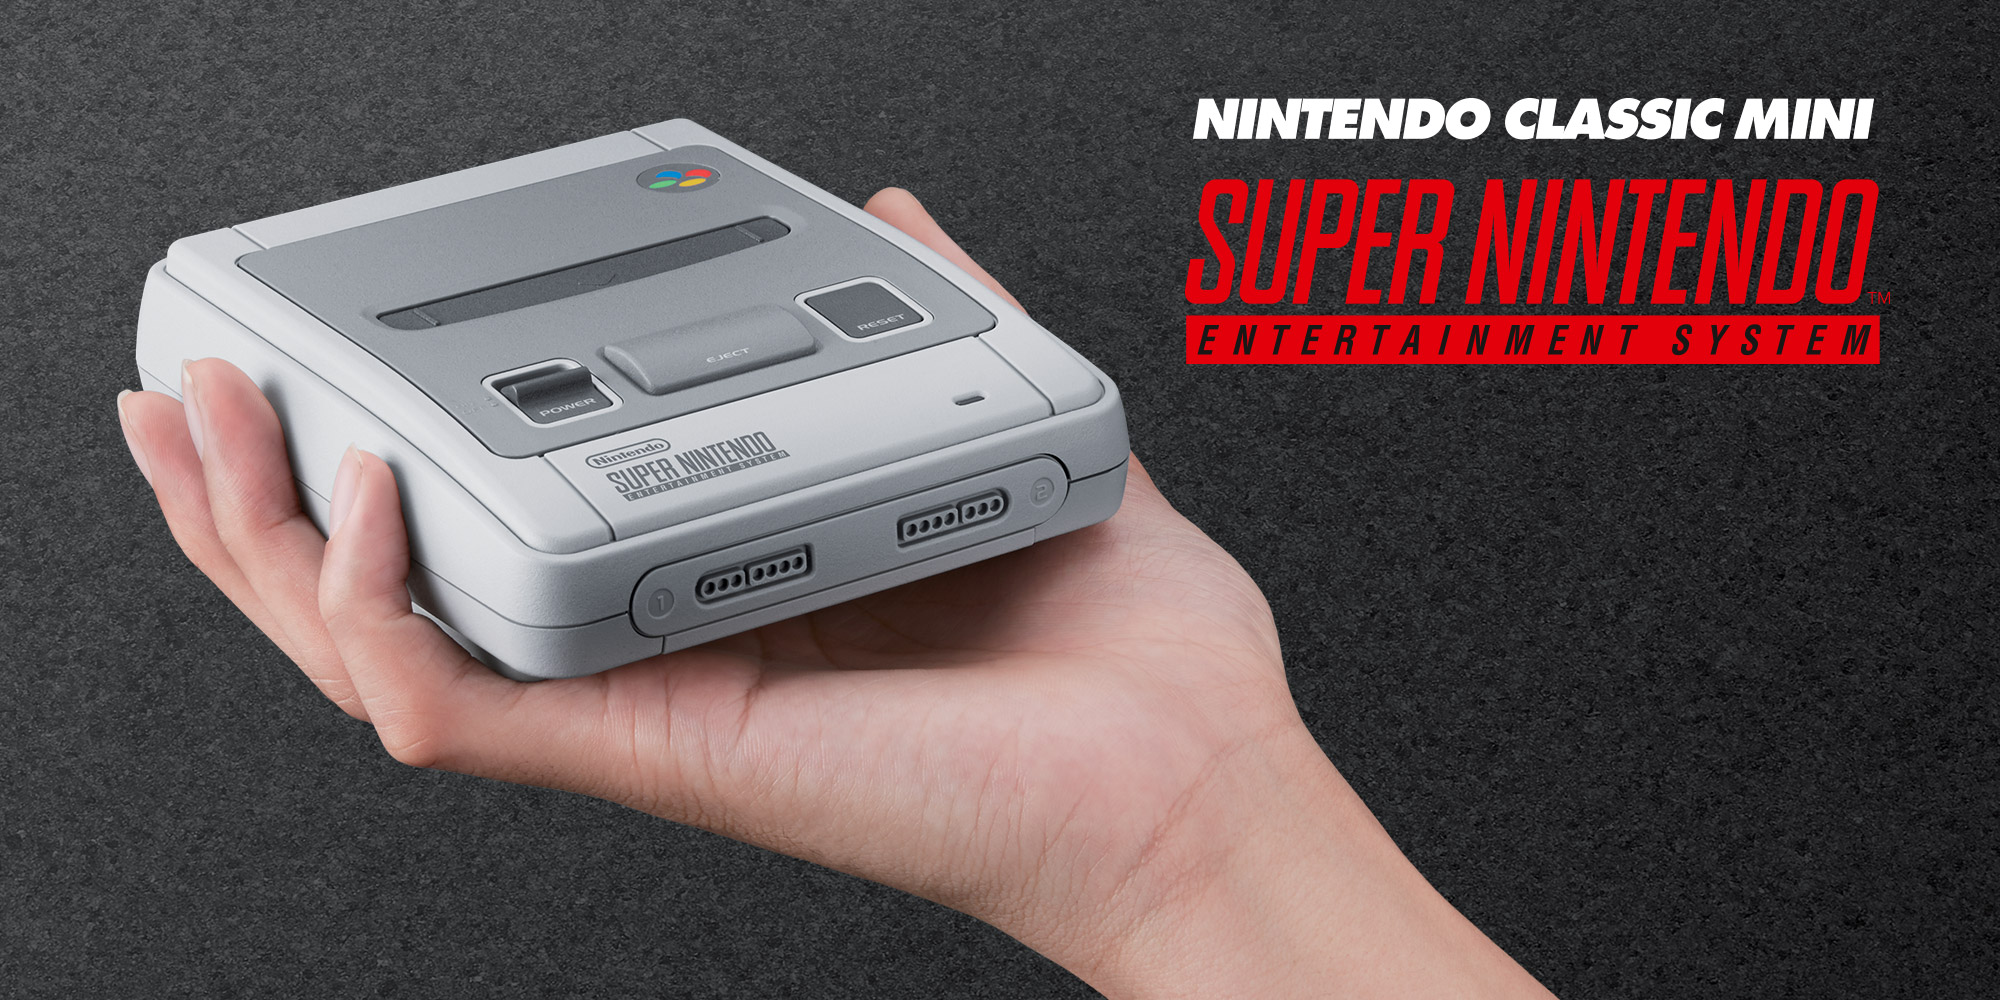 7 reasons the SNES Mini is far superior to the NES Mini